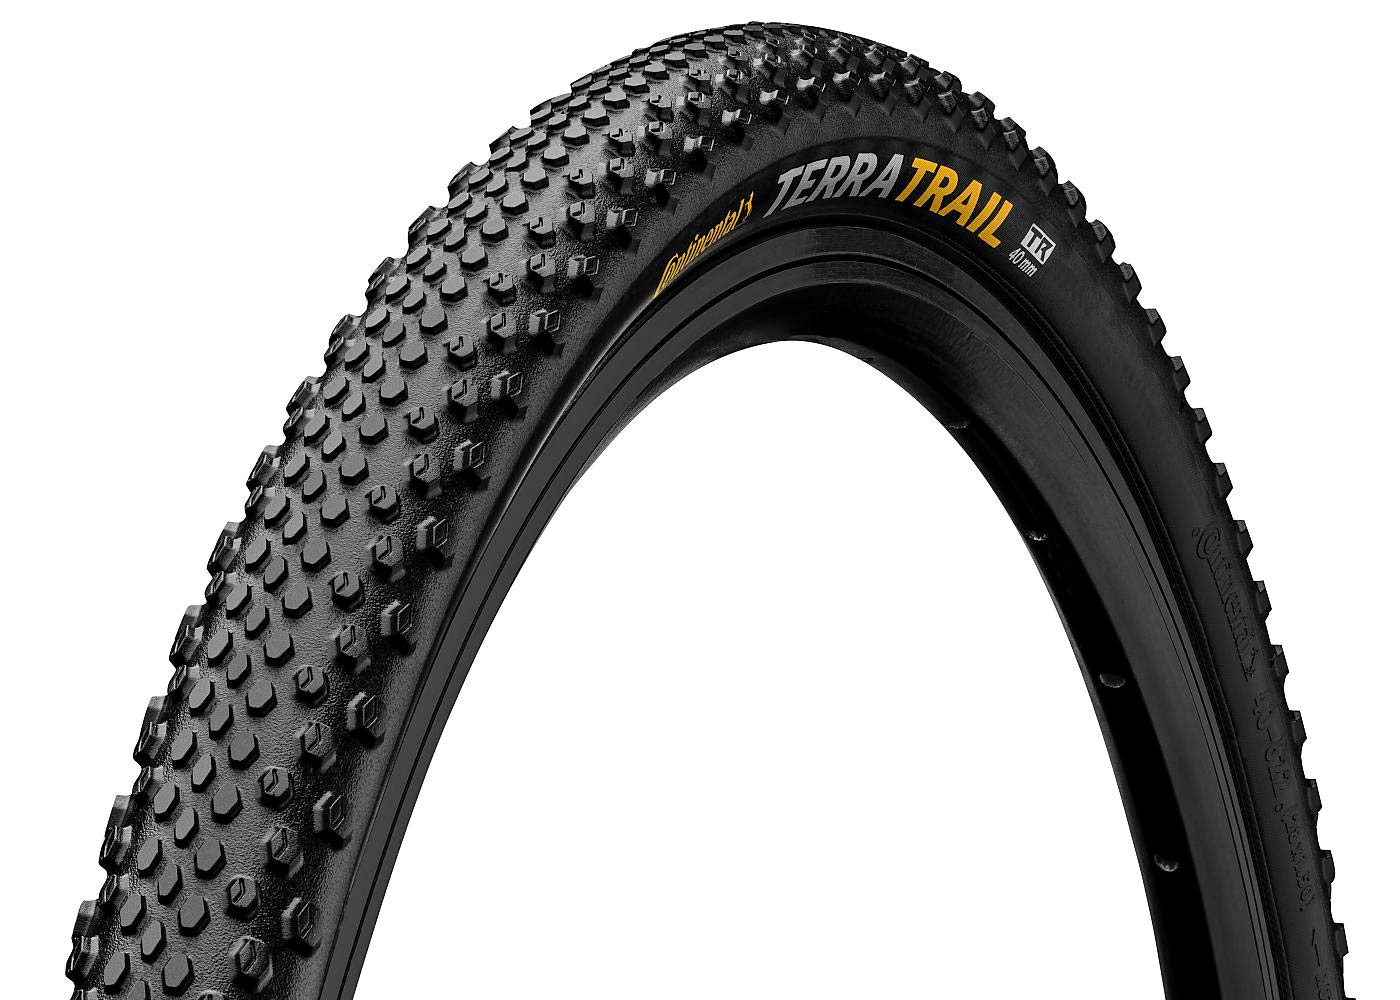 Continental Terra Trail Tyre